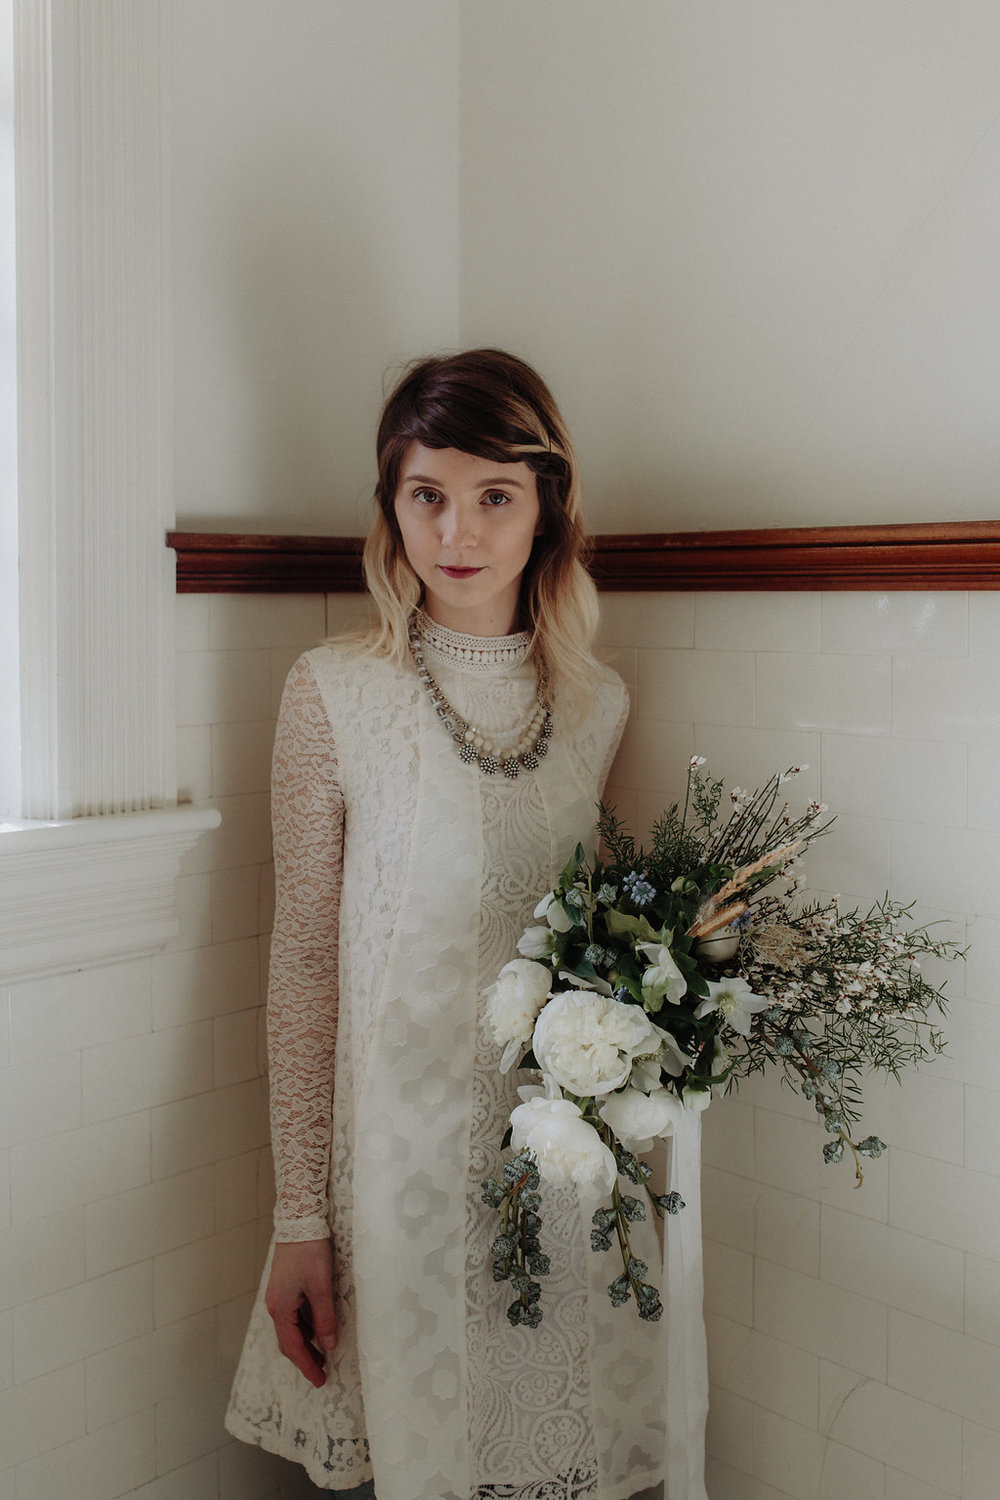 Winter wedding flowers by Nectar & Root | Wedding floral design services in Burlington, Vermont (VT) | Anthropologie wedding dress, green and white bridal bouquet